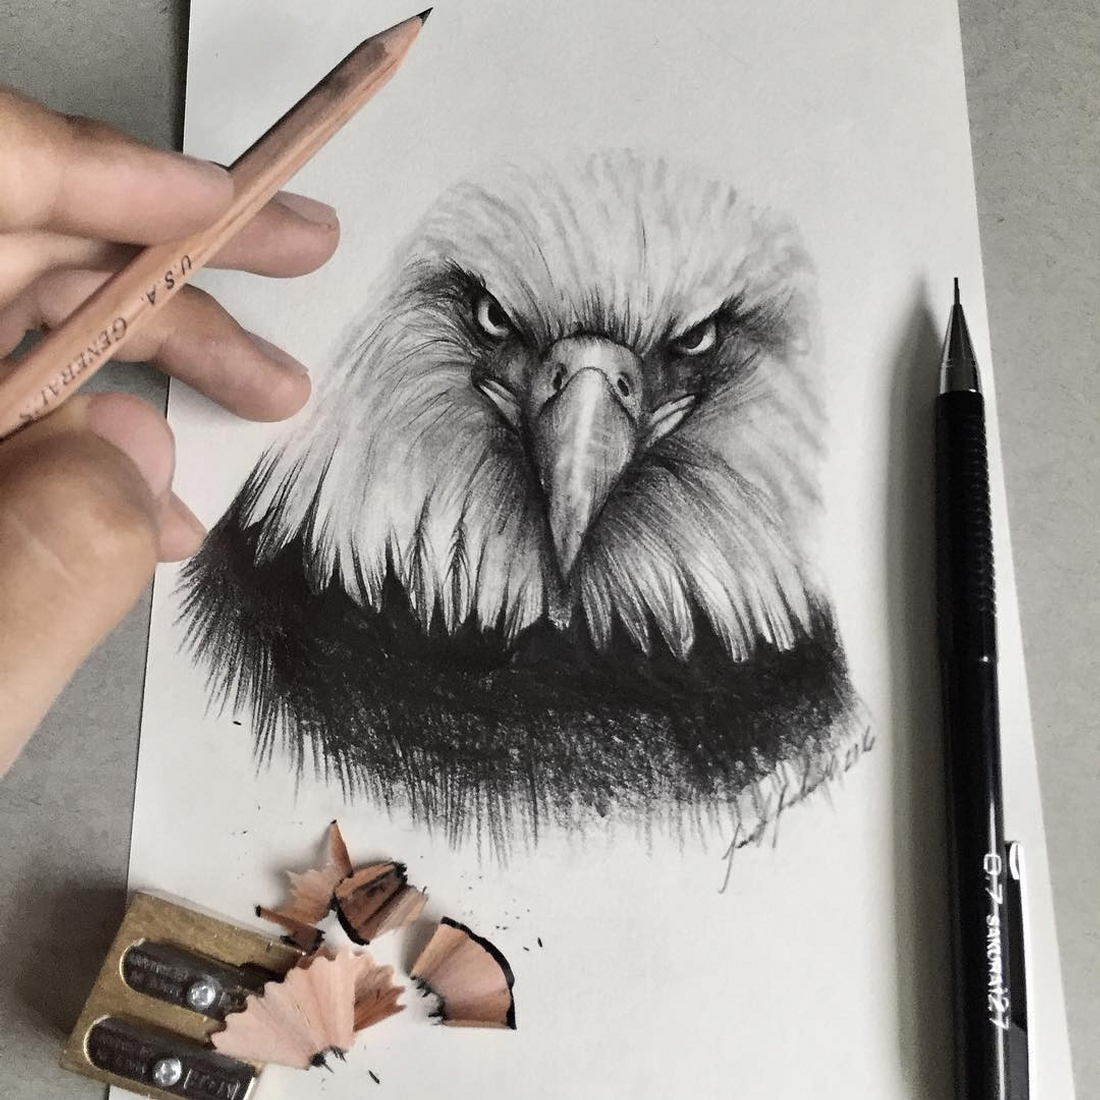 09-Bald-Eagle-Jonathan-Martinez-Realistic-Pencil-Animal-Drawings-www-designstack-co